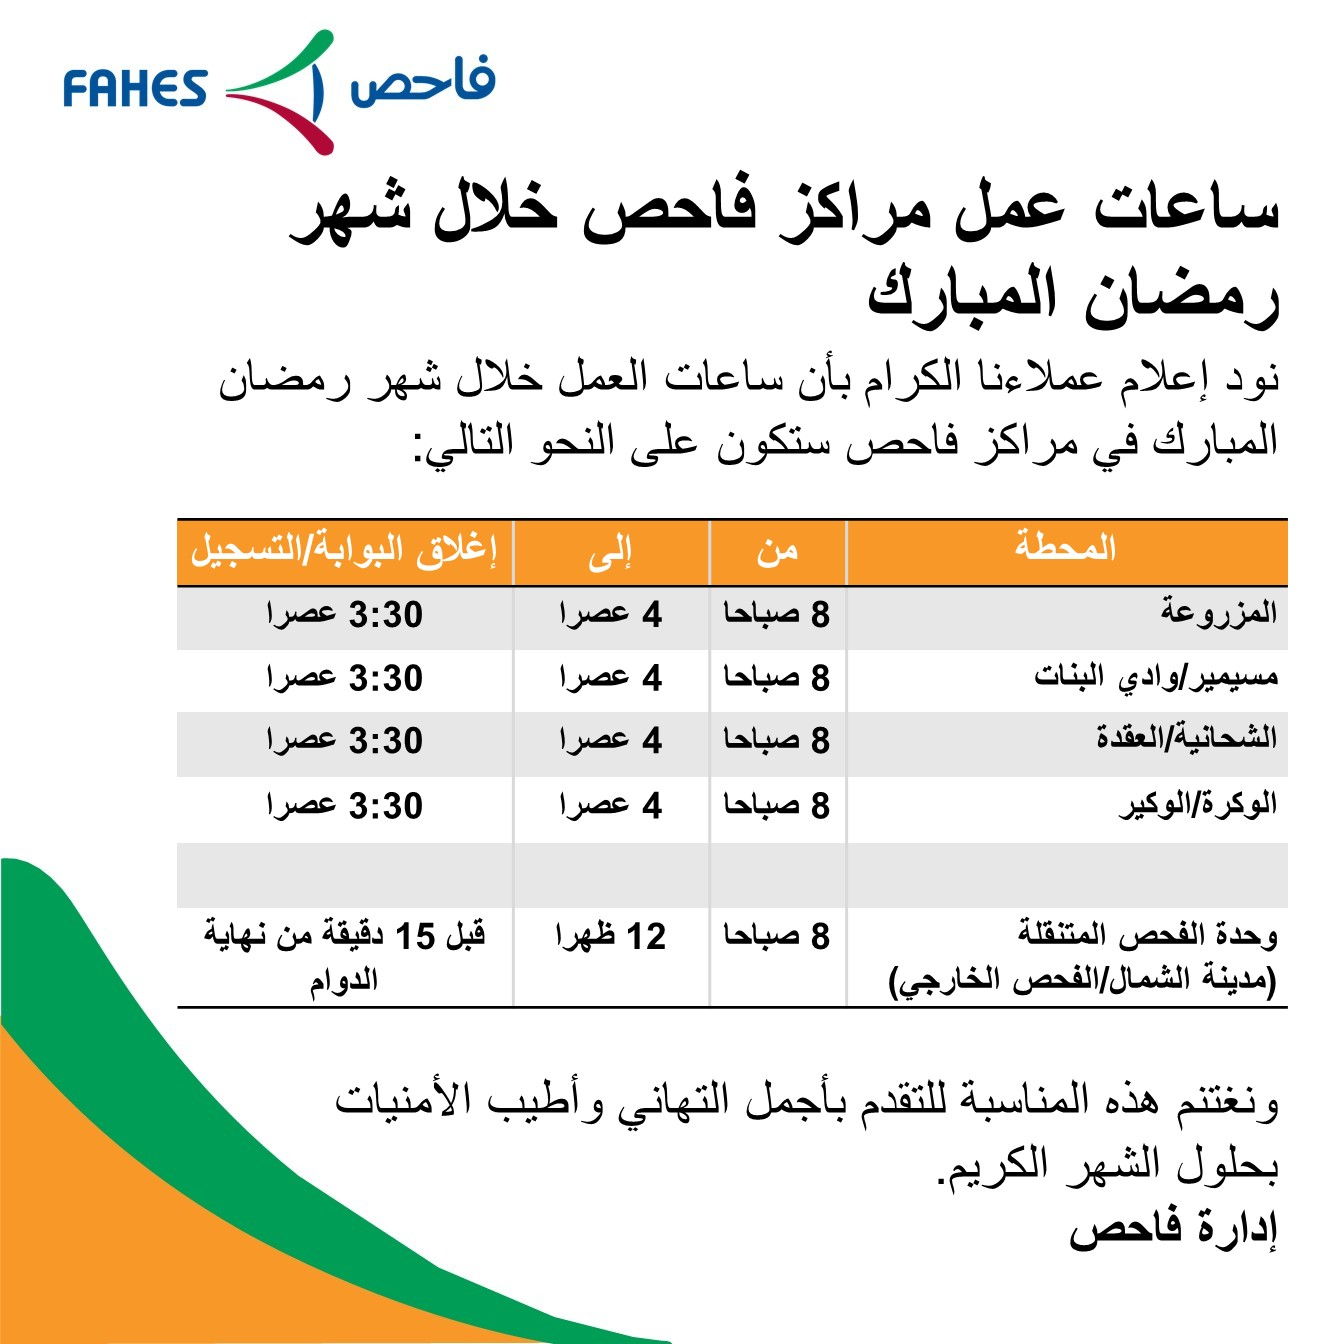 FAHES Working Hours During The Holy Ramadan